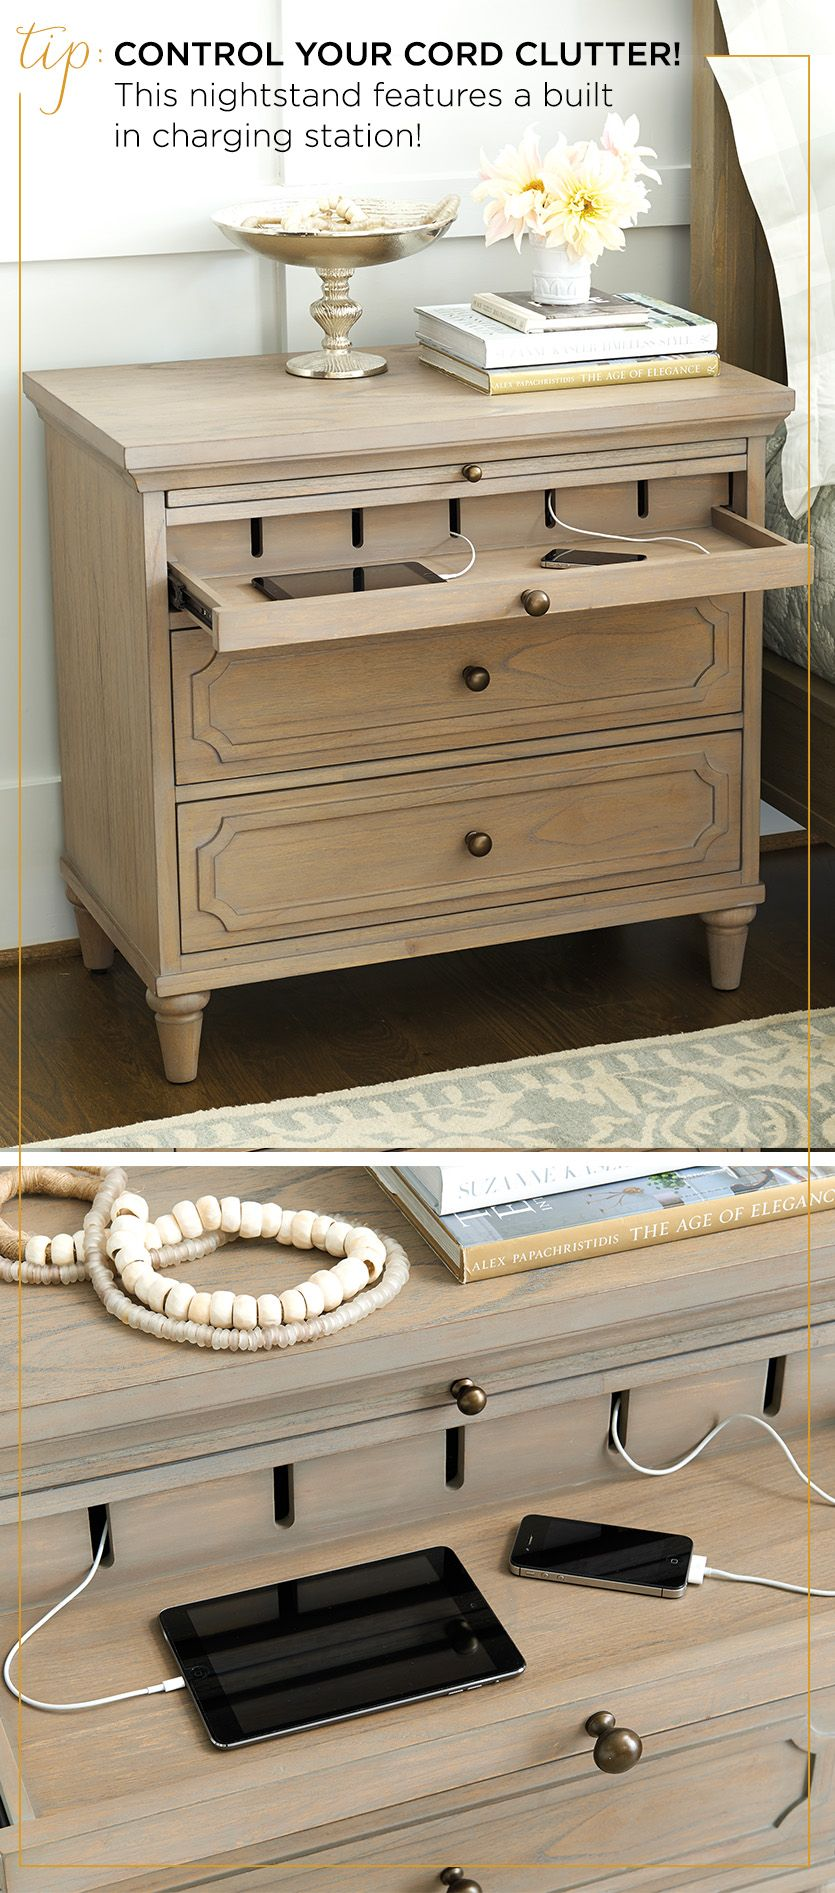 Bedroom Organization Can Be A Pain But How Clever Is This Keep All Of Your Devices Organized With Our Isabella Charging Nightstand